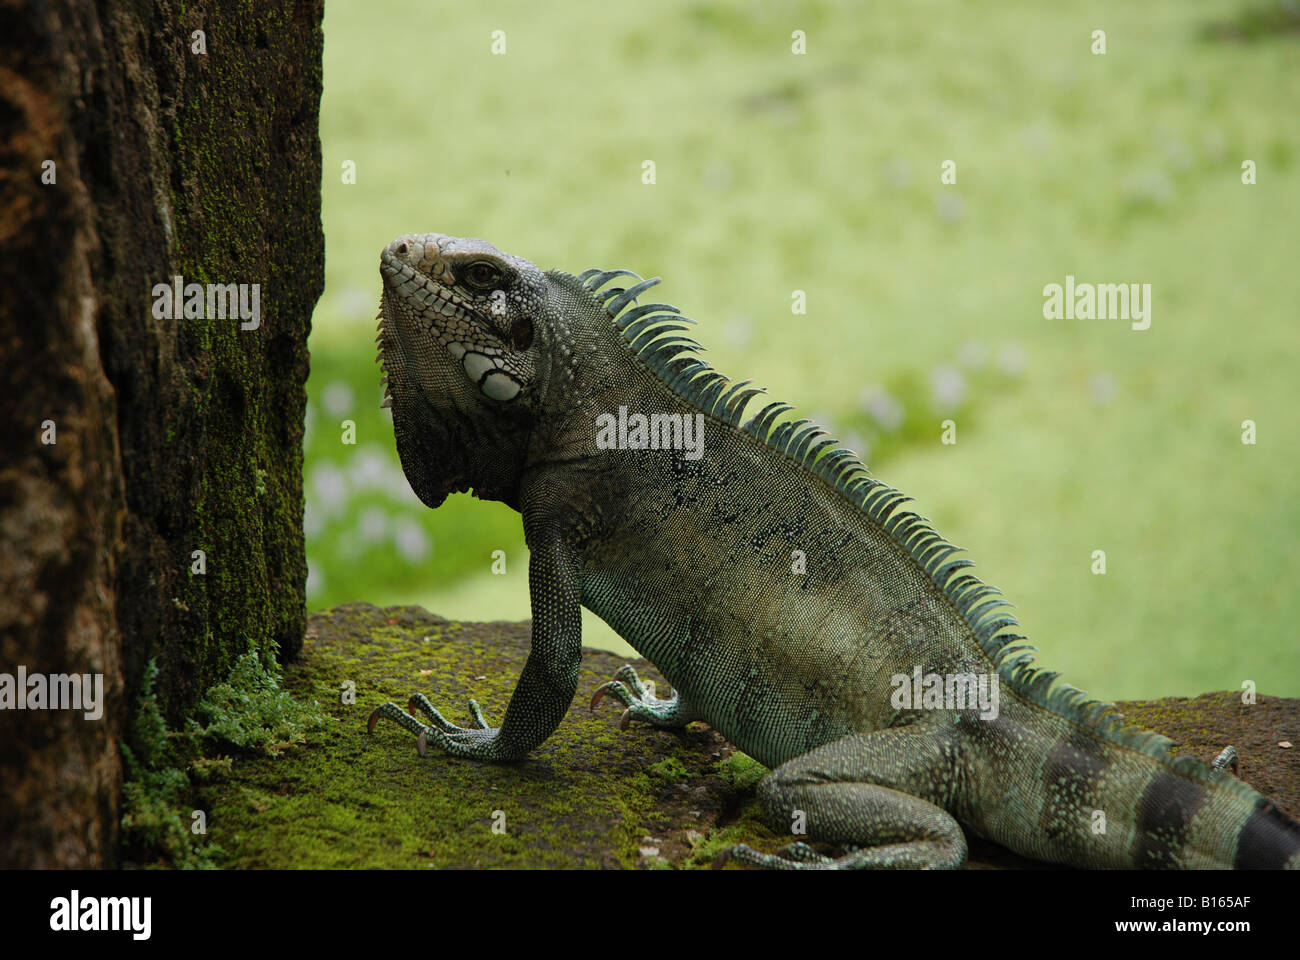 iguana on a rockwall by the sun - Stock Image